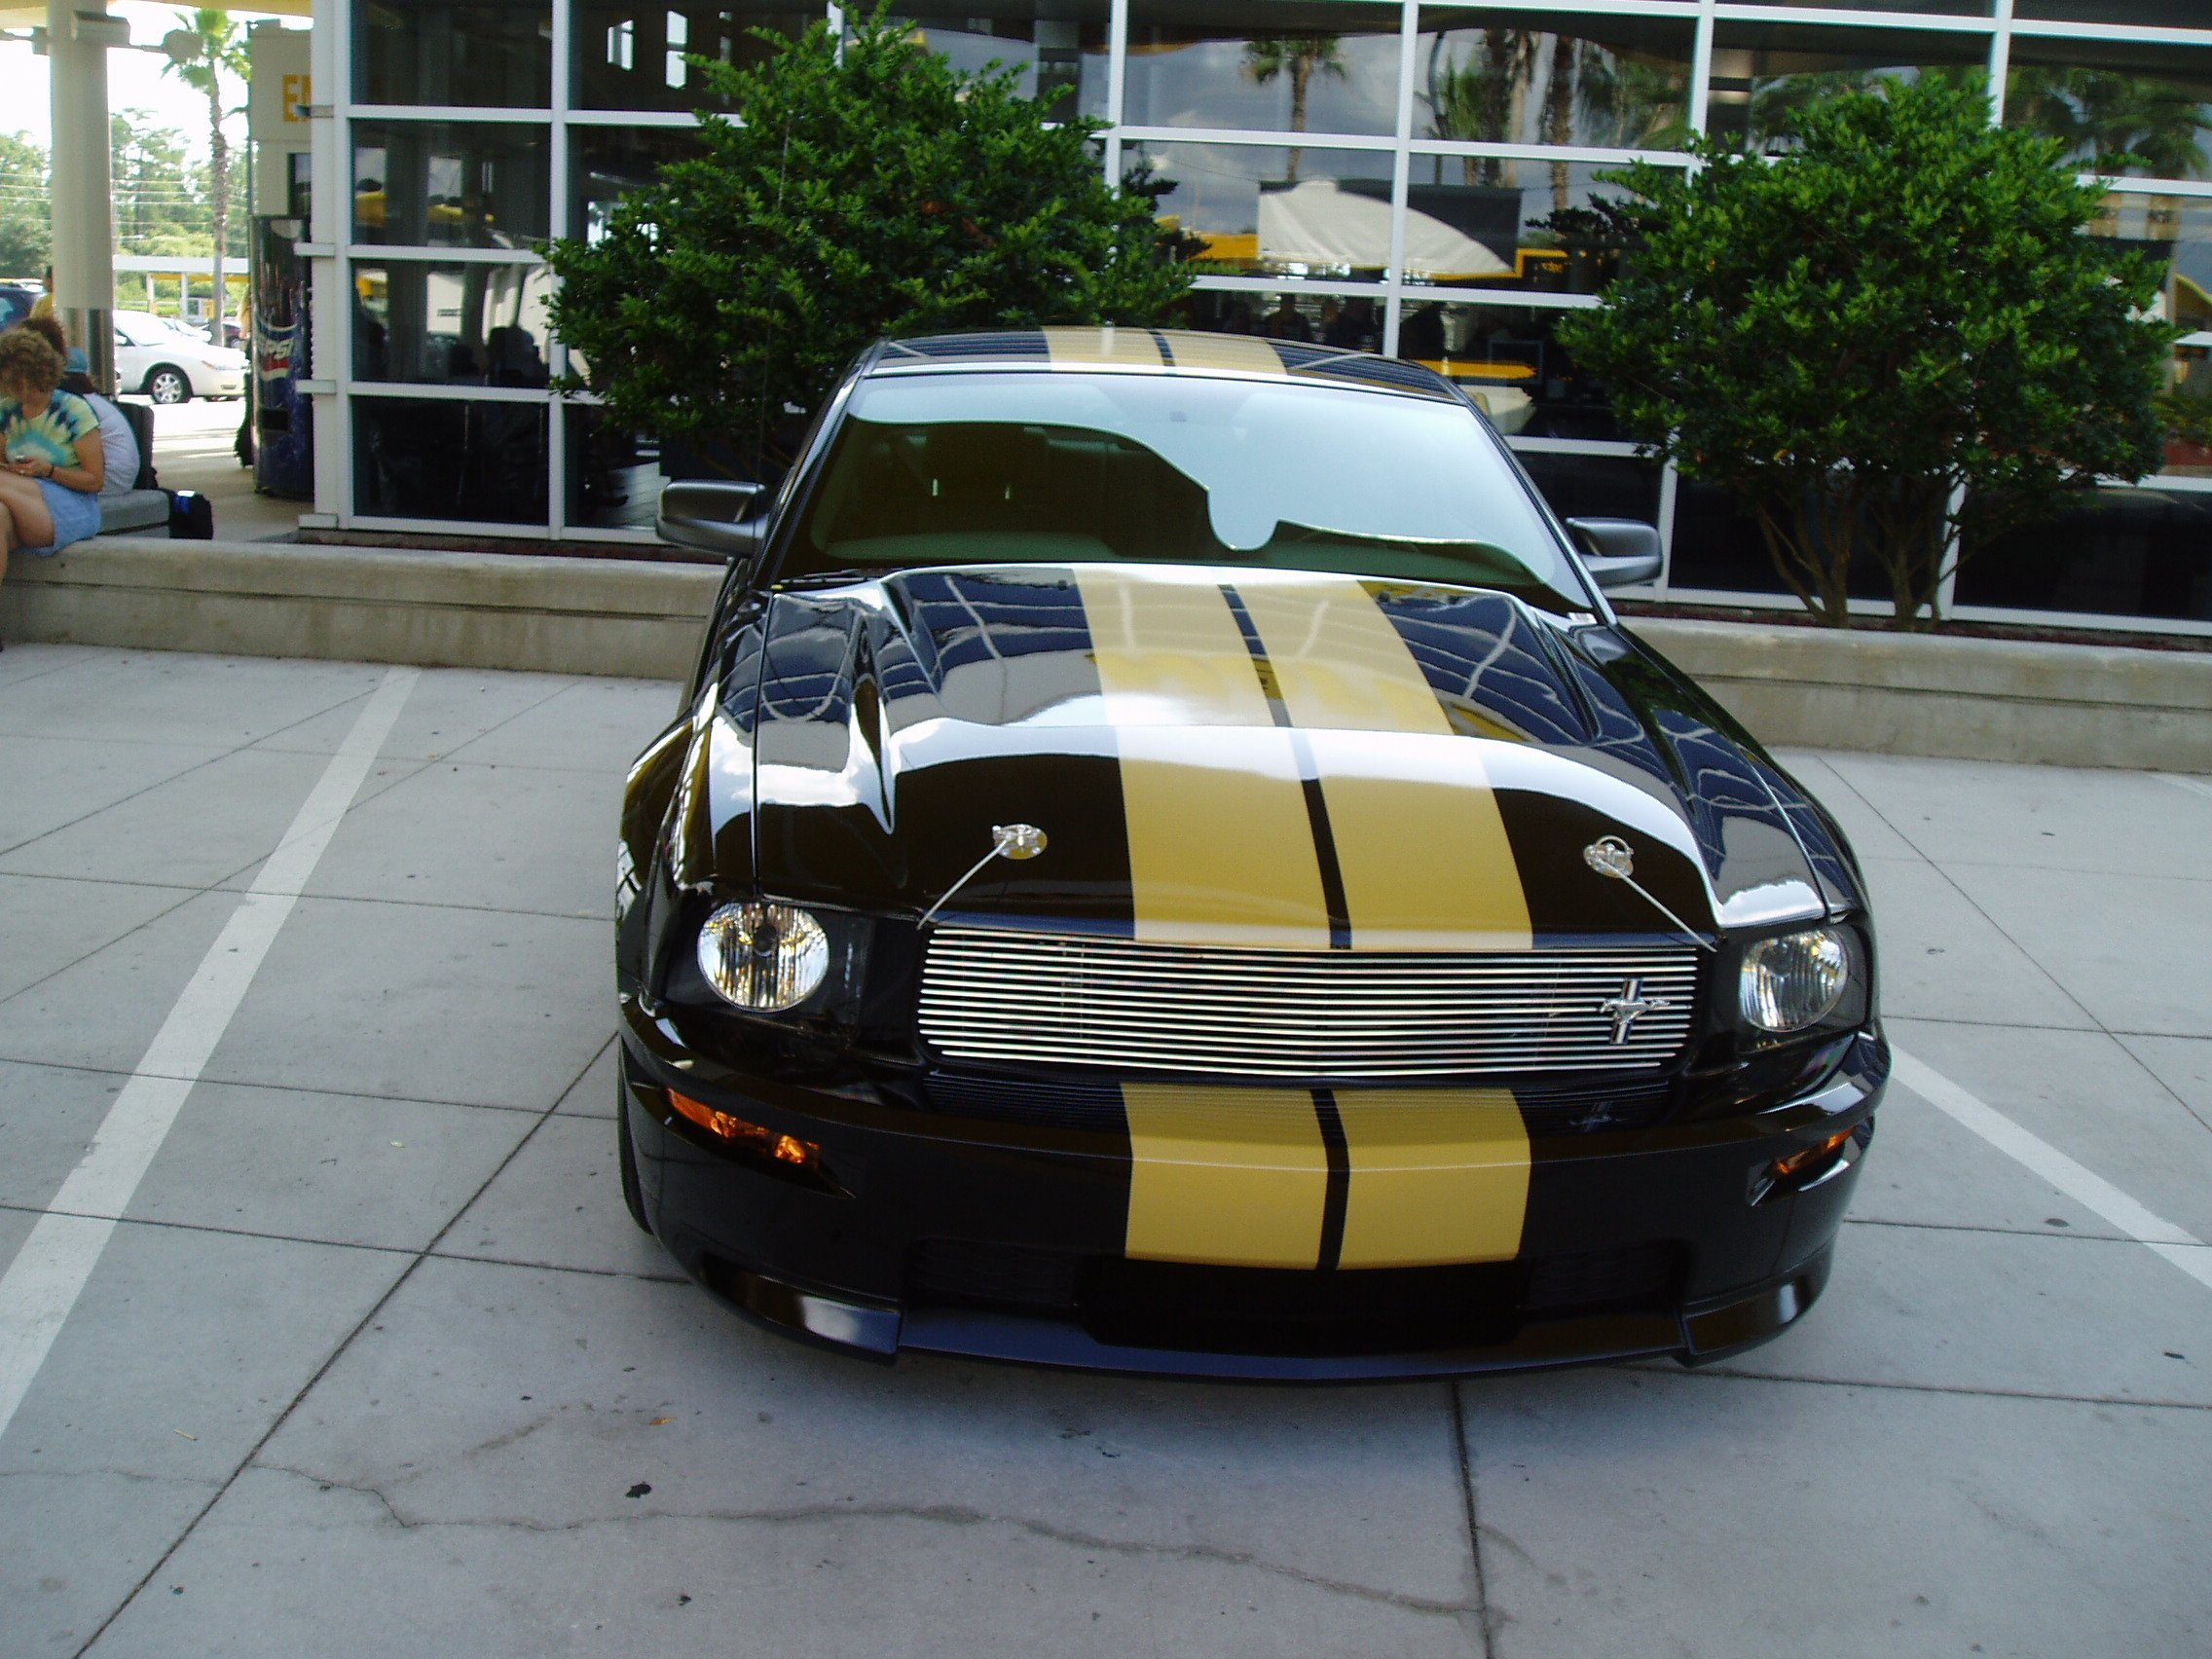 http://www.allfordmustangs.com/forums/attachments/2005-2010-mustang-talk/41956d1207012151-whats-your-thoughts-gt-h-hertz-gt.jpg